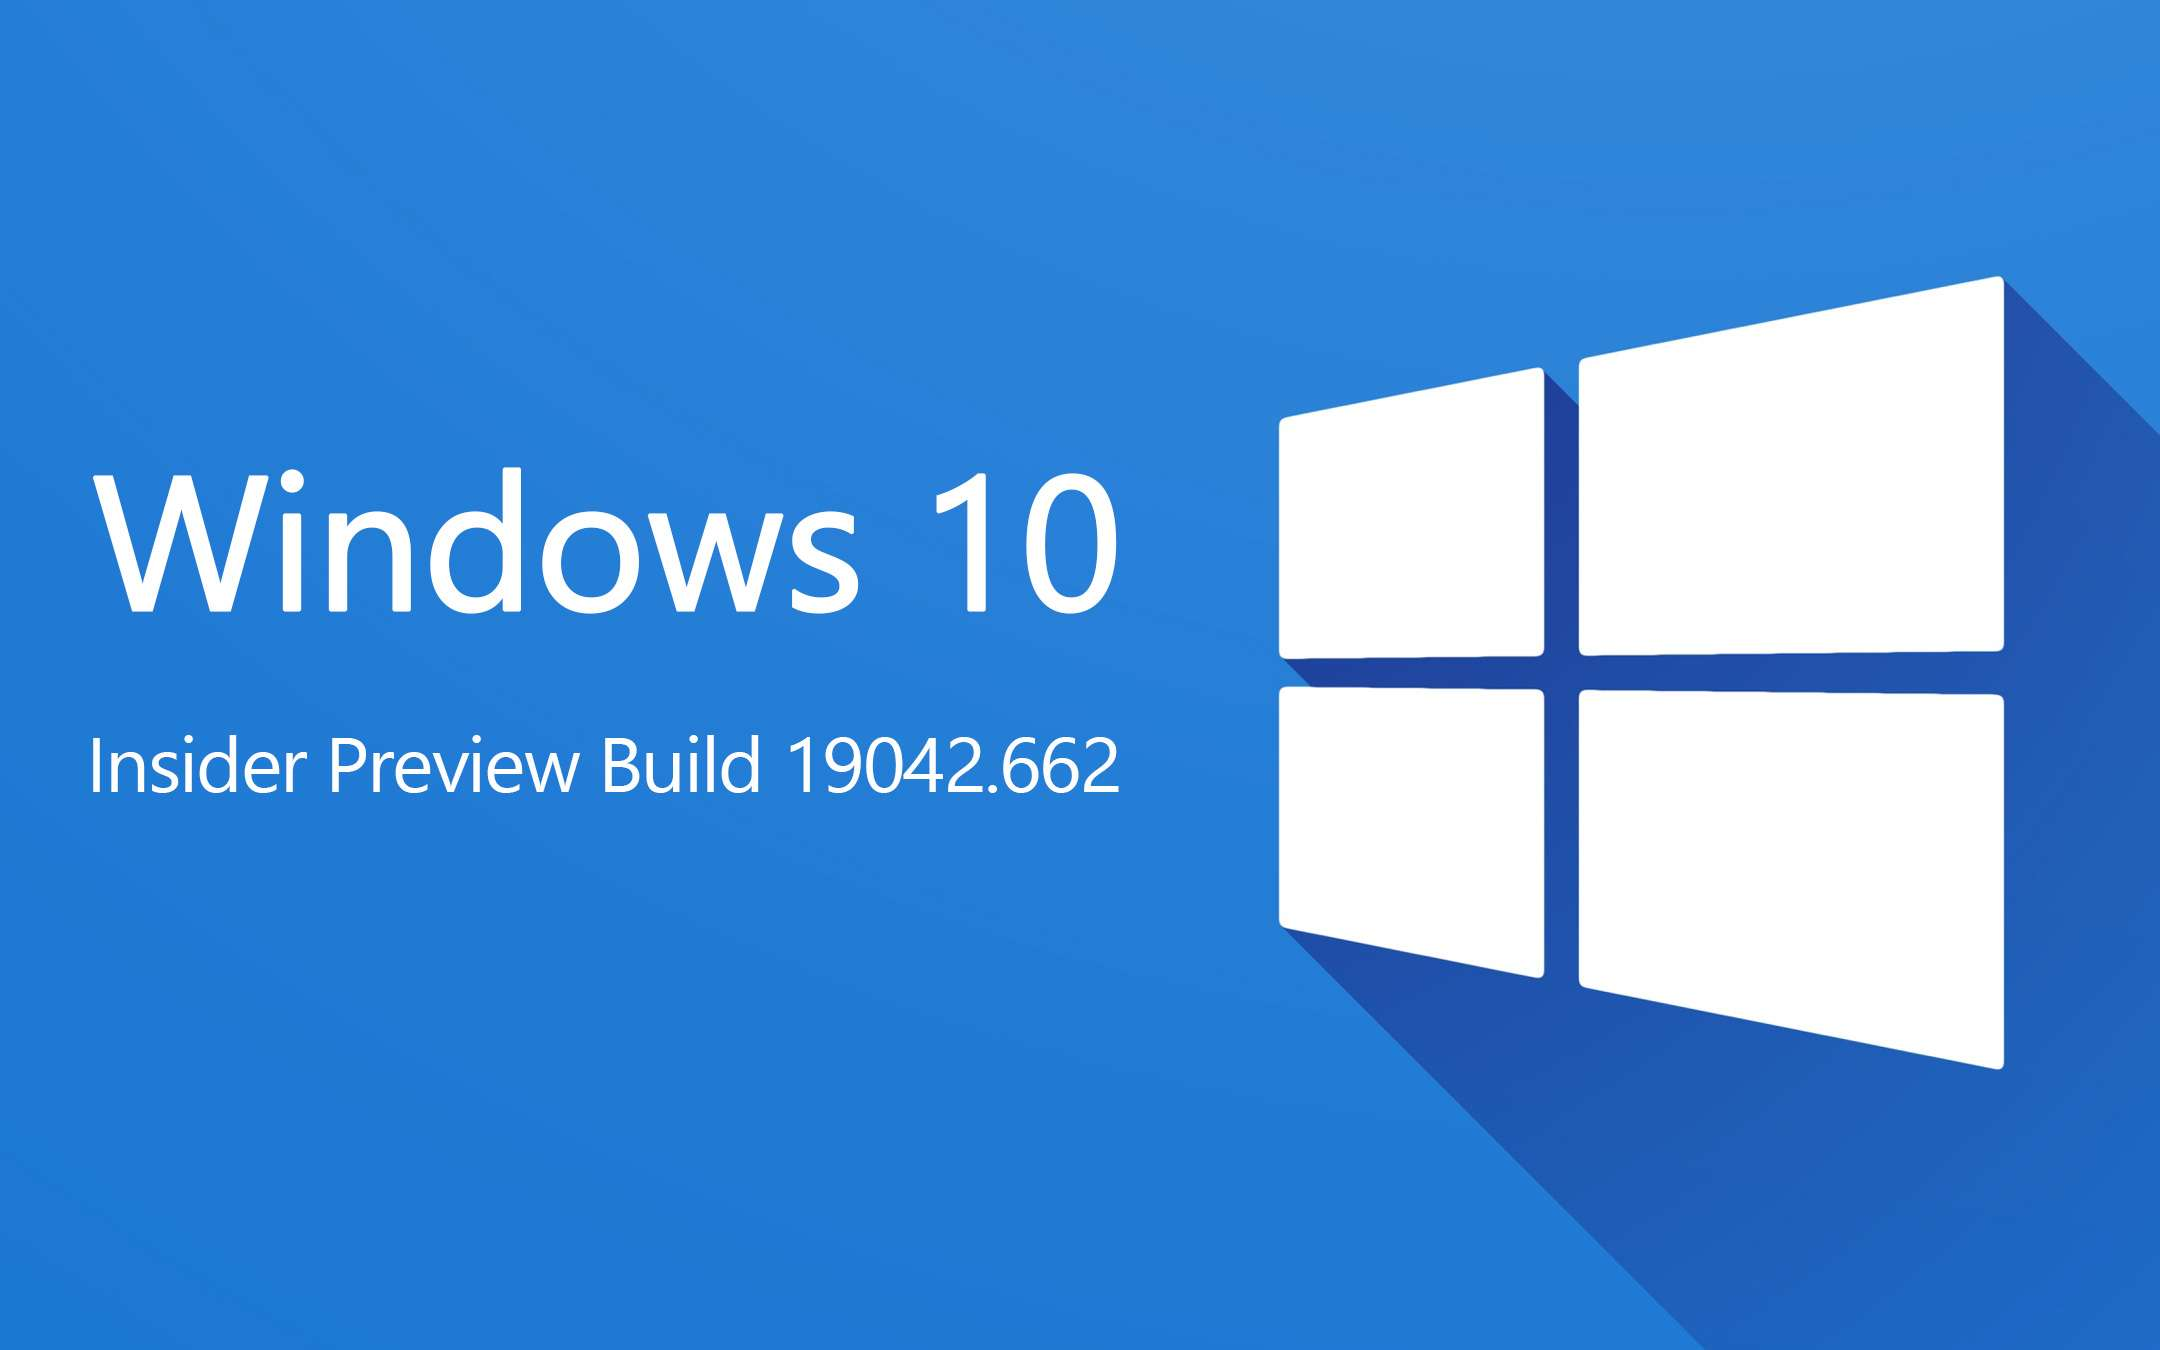 Windows 10 Preview Build 19042.662 to Insiders